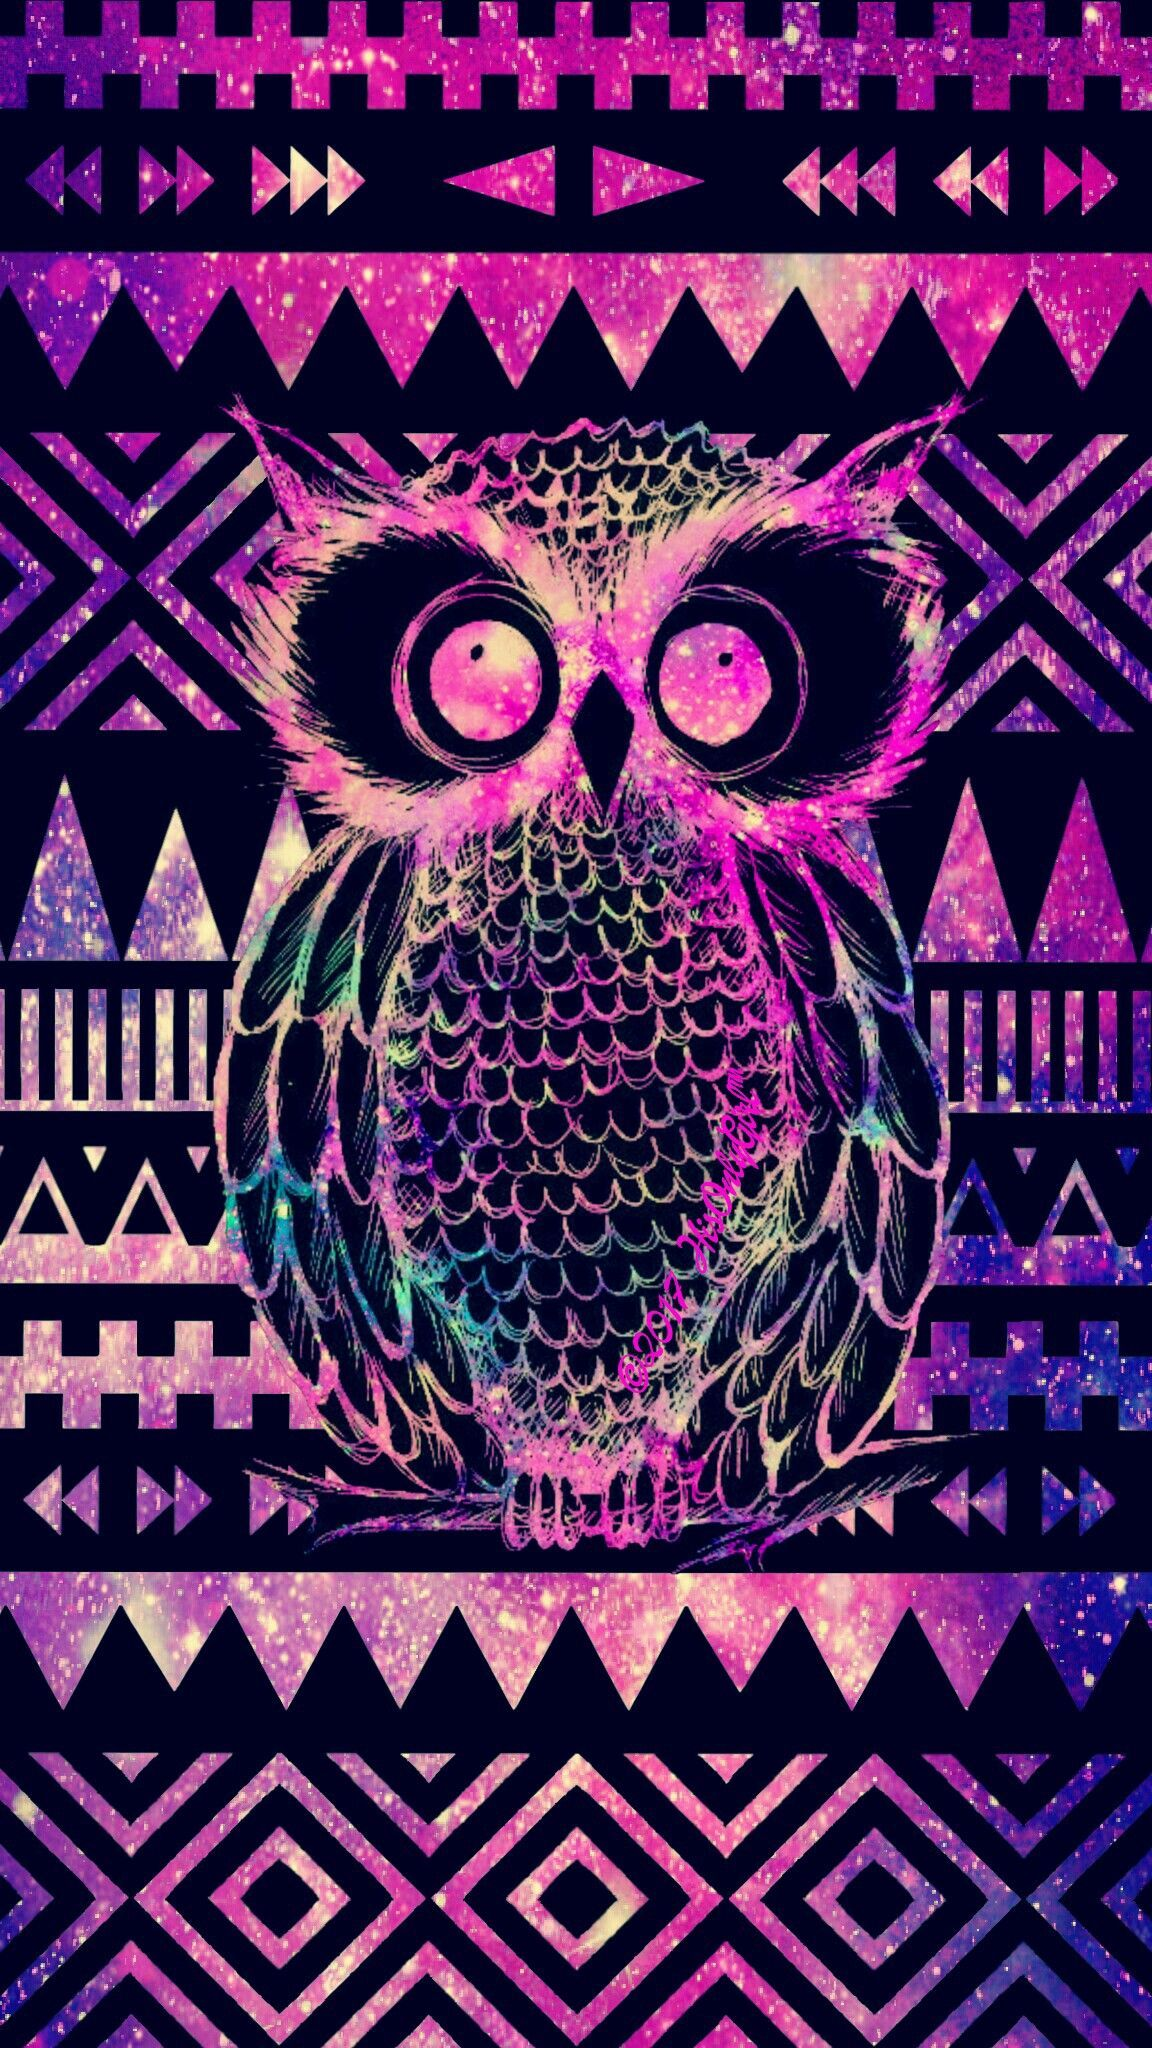 1152x2048 Tribal owl Aztec galaxy wallpaper I created for the app CocoPPa ...